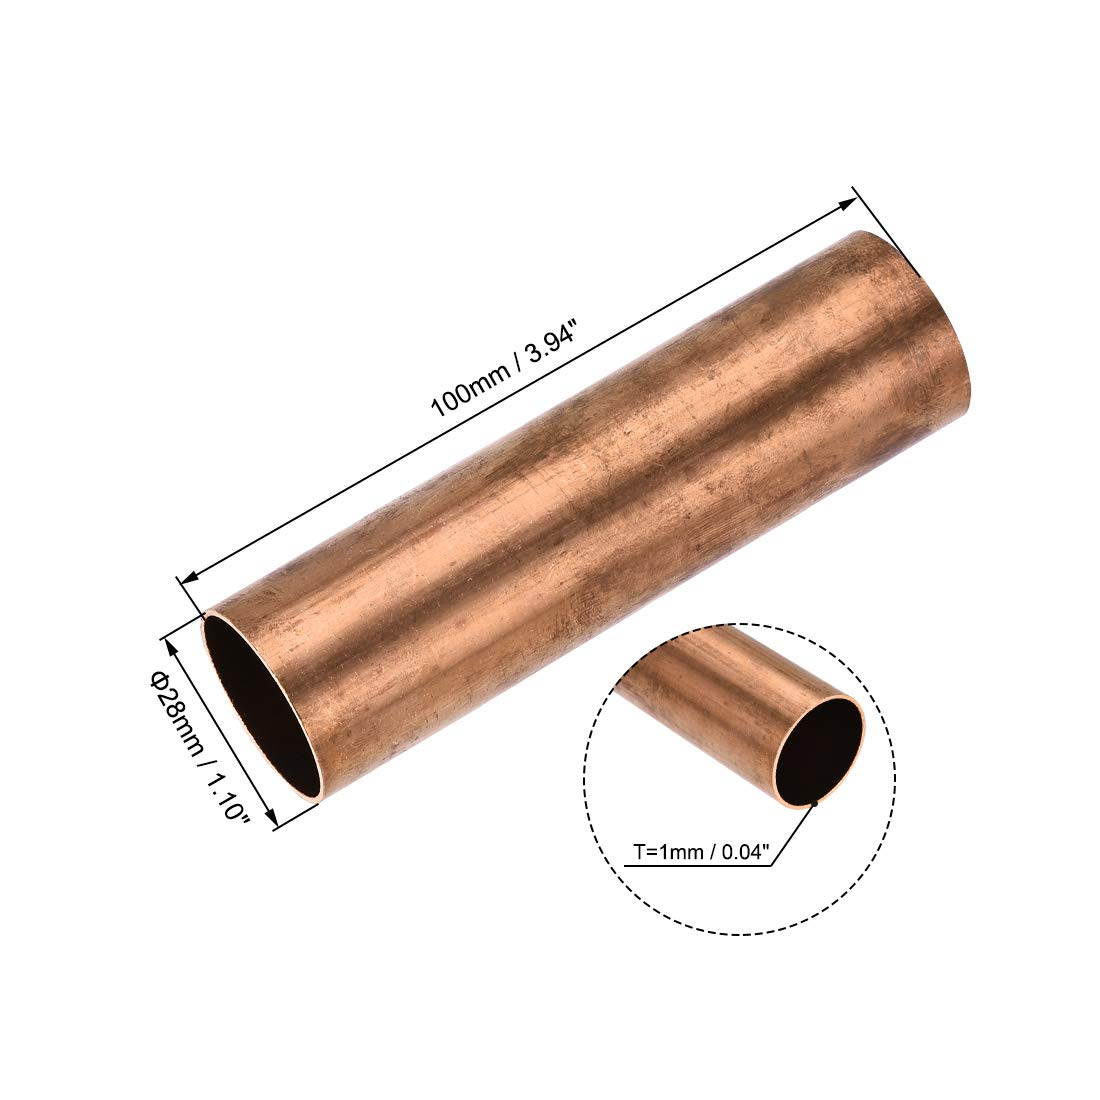 uxcell Copper Round Tube 12mm OD 1mm Wall Thickness 100mm Length Hollow Straight Pipe Tubing 3 Pcs